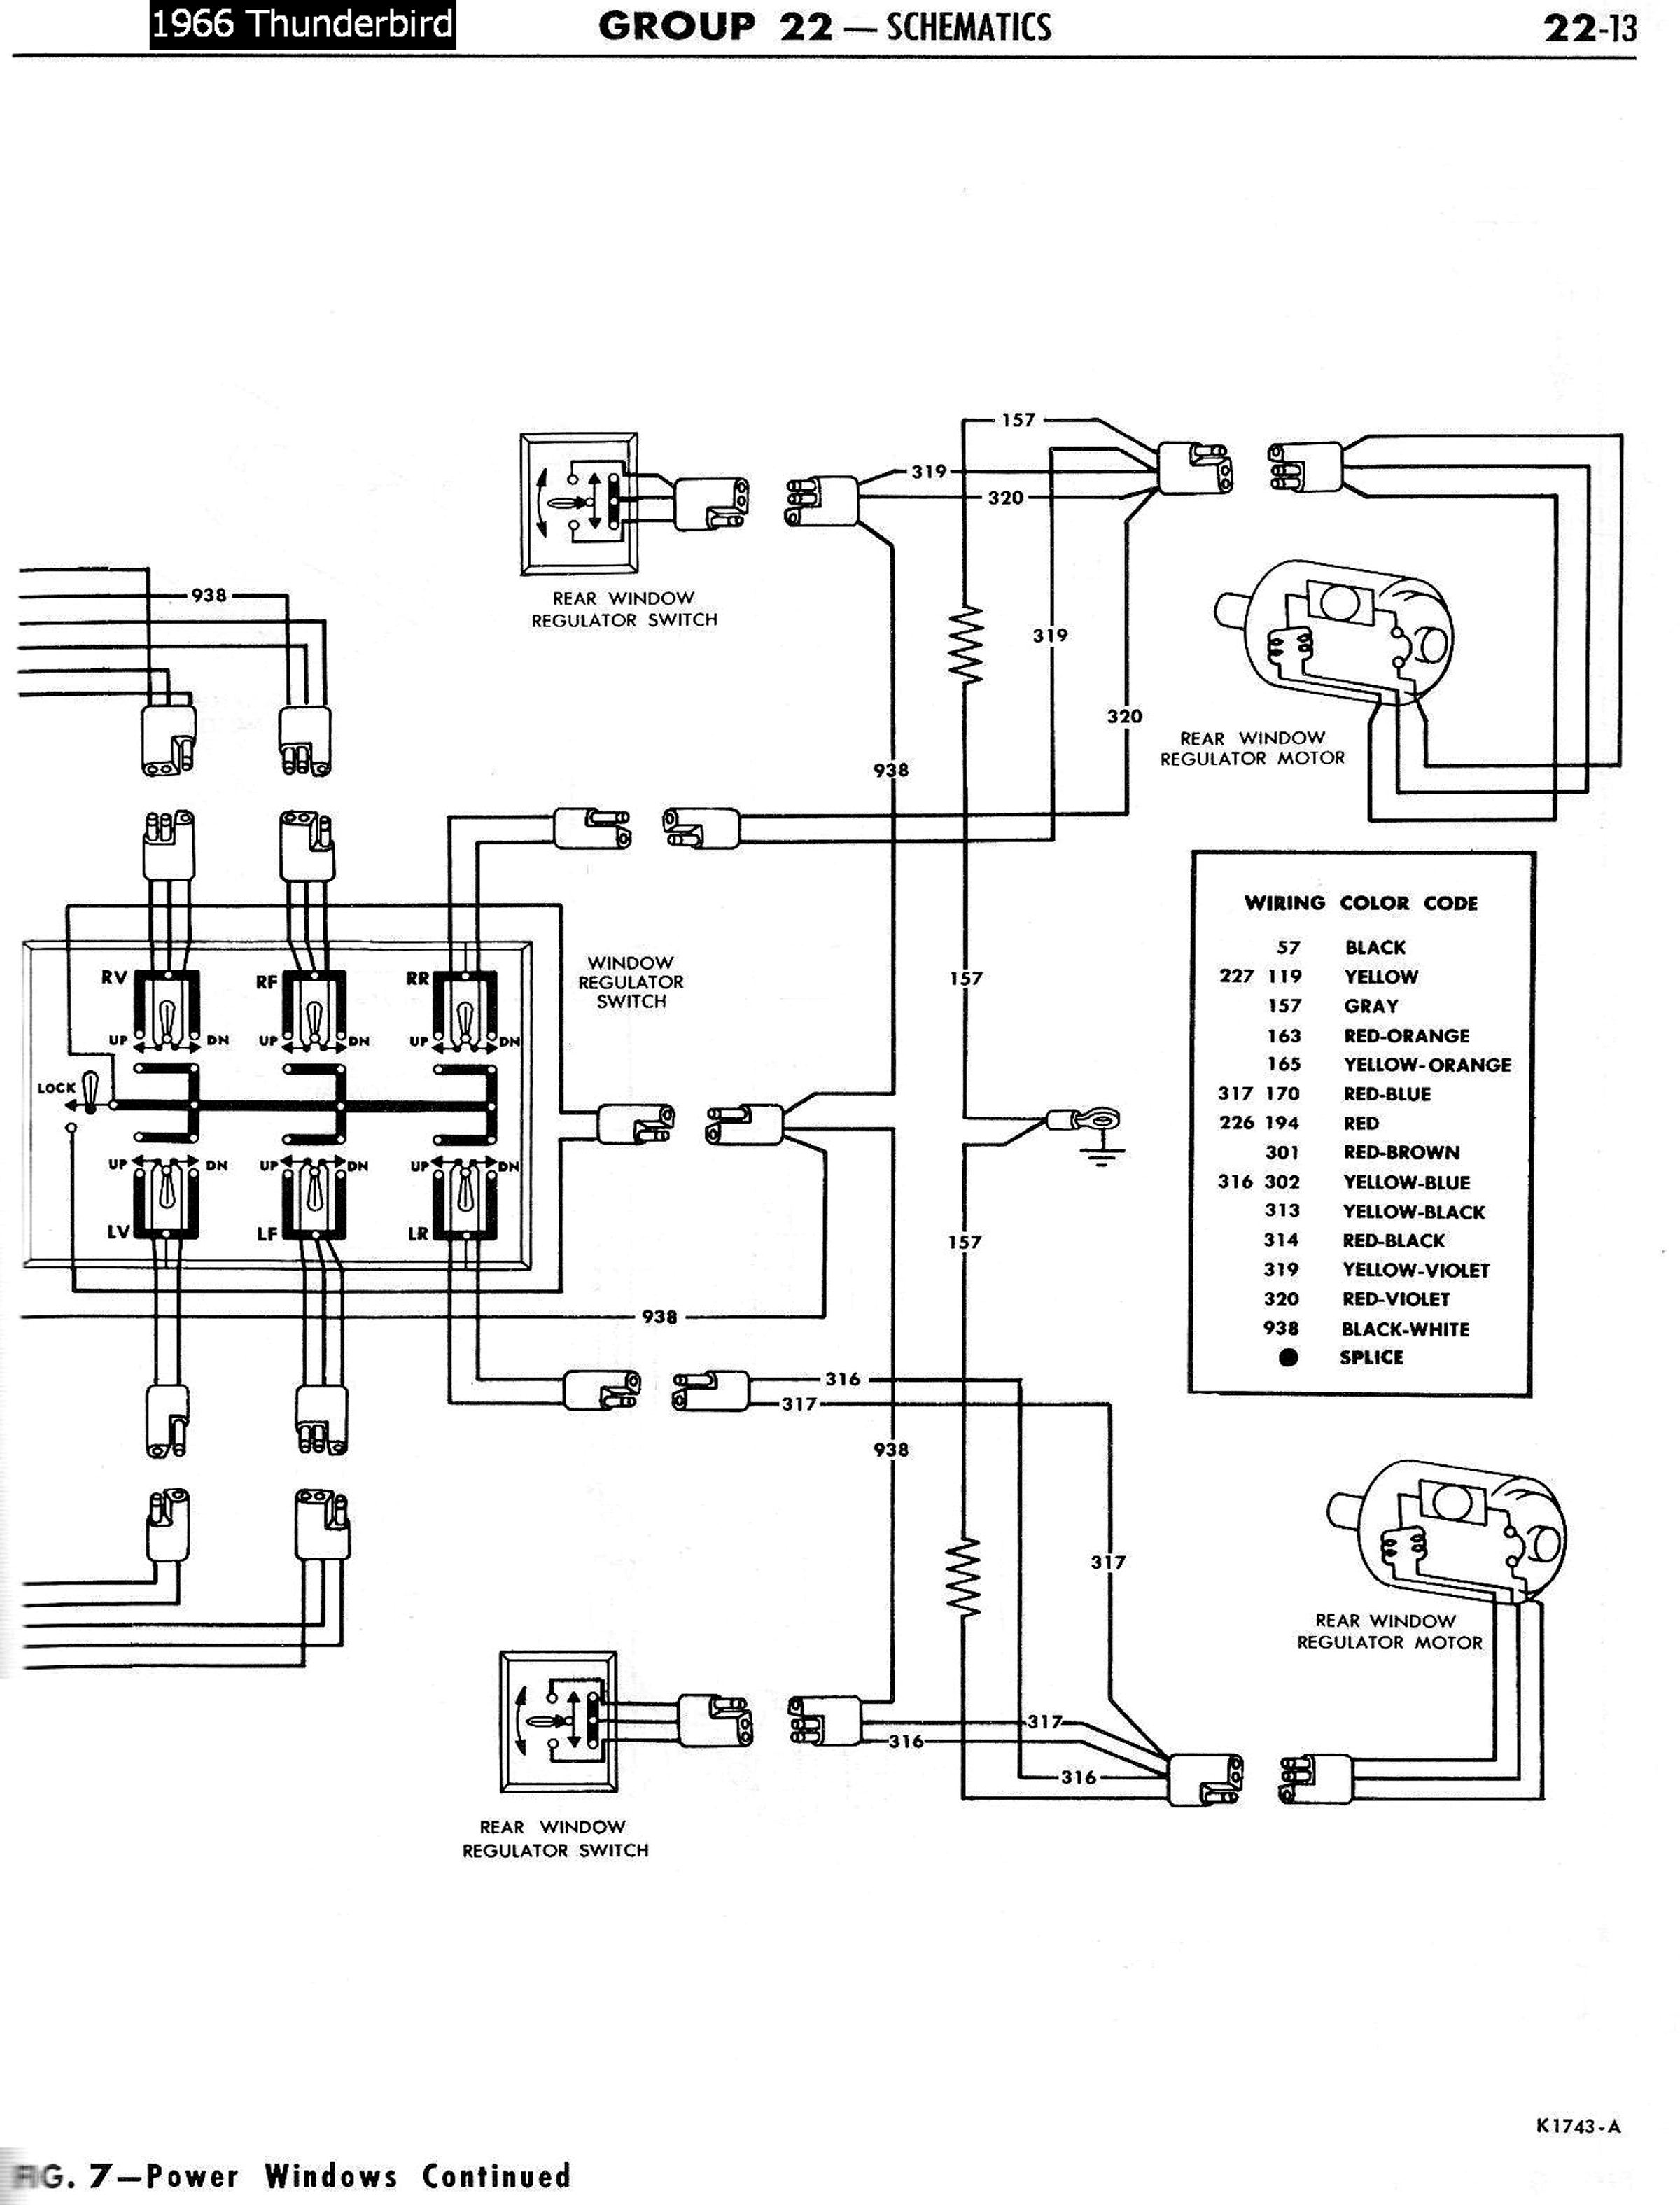 1968 ford turn signal wiring diagram online schematics diagram rh delvato  co 1969 F100 Wiring Diagram 1970 Ford F100 Wiring Harness